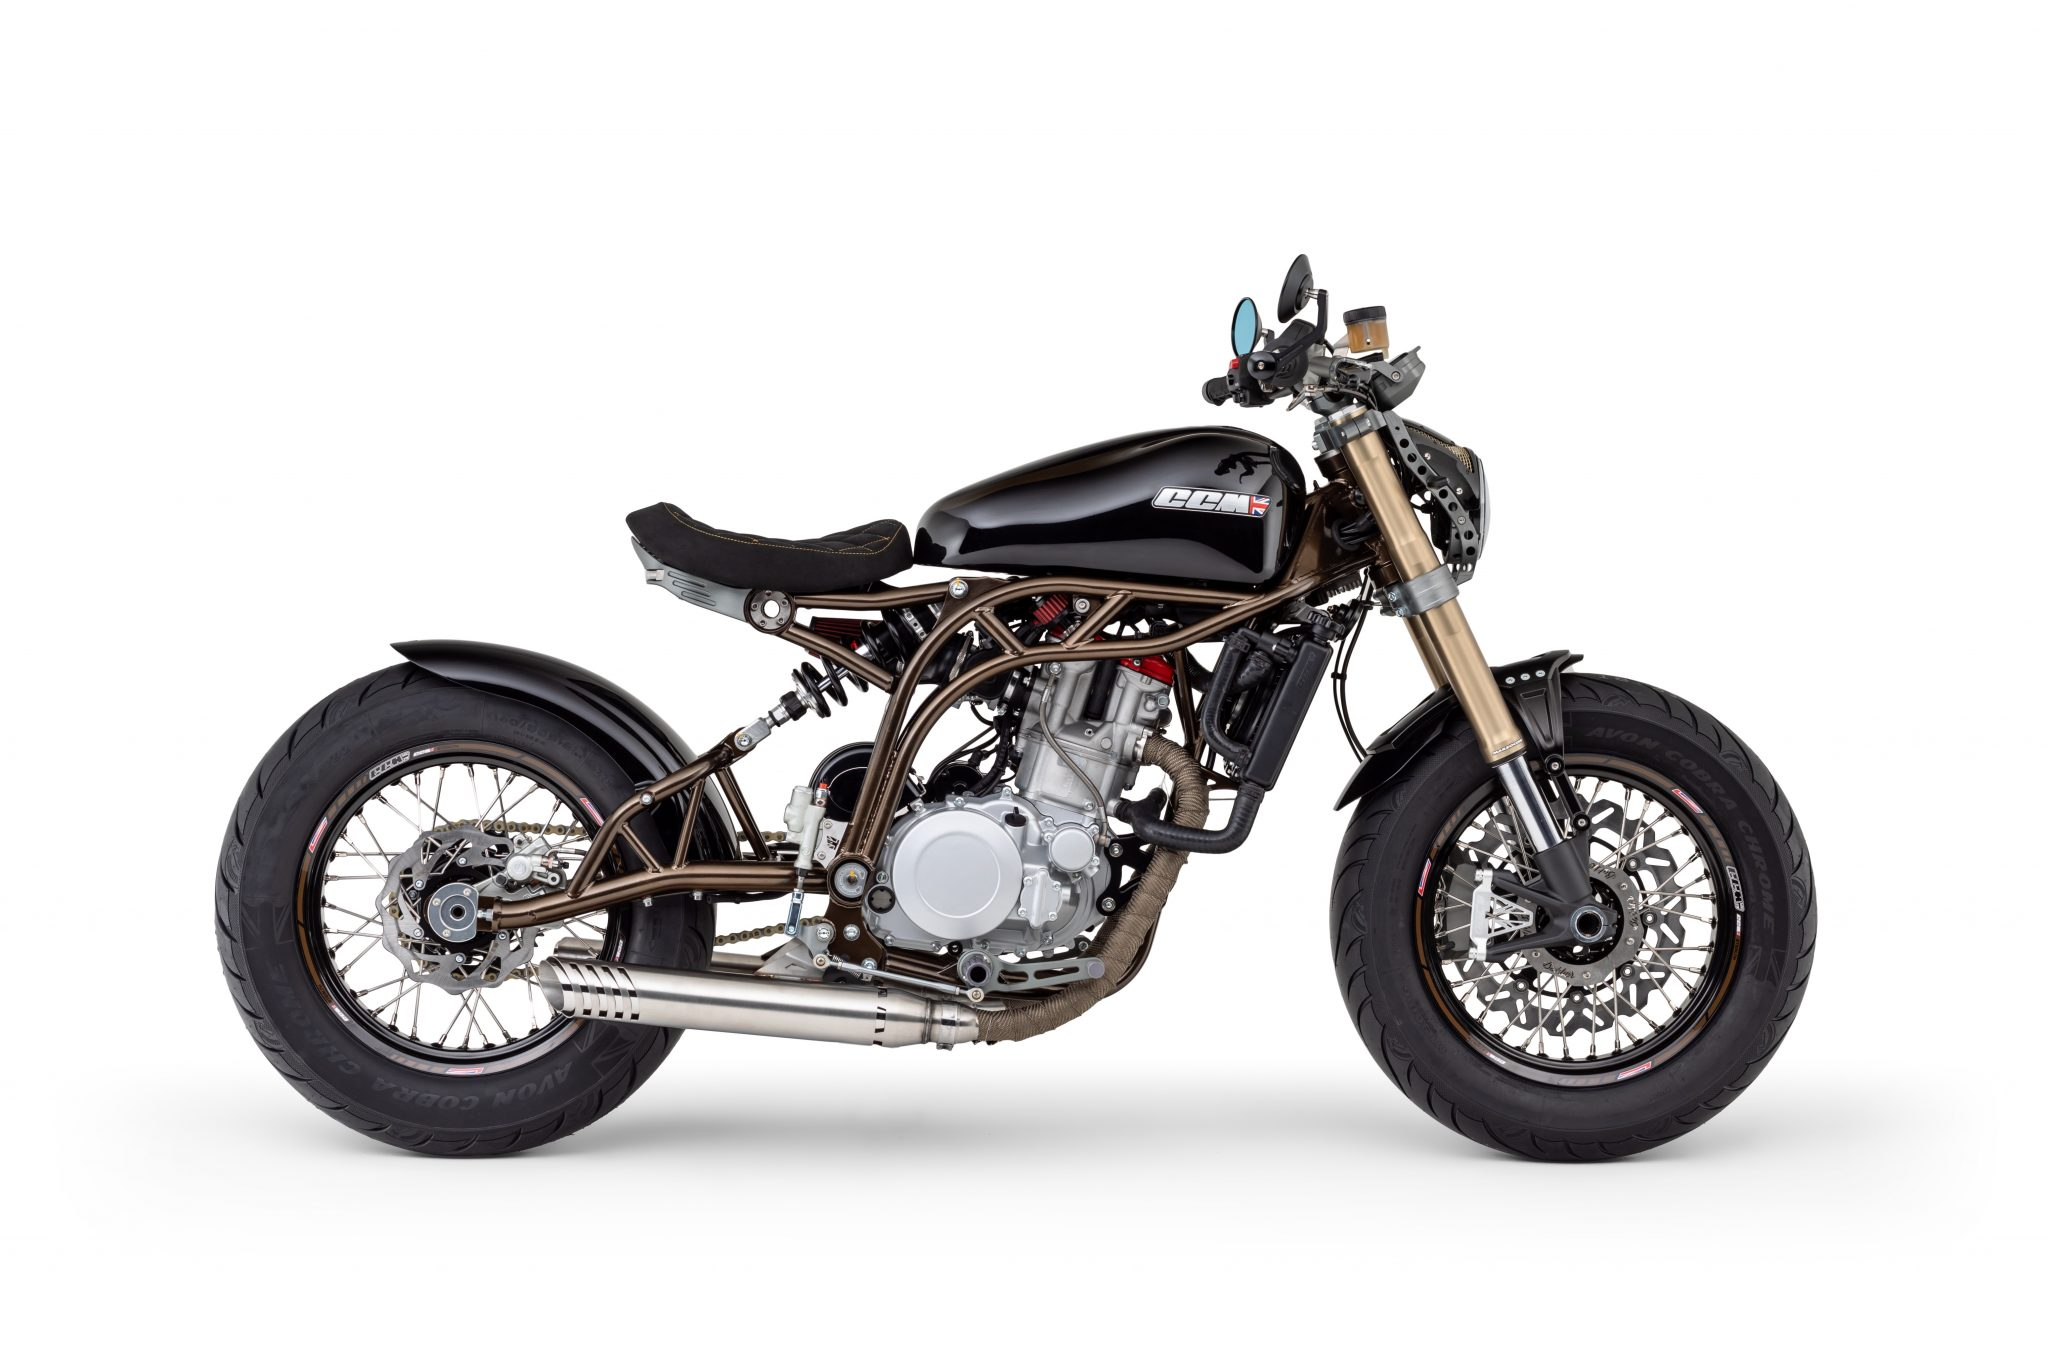 THE STEALTH BOBBER